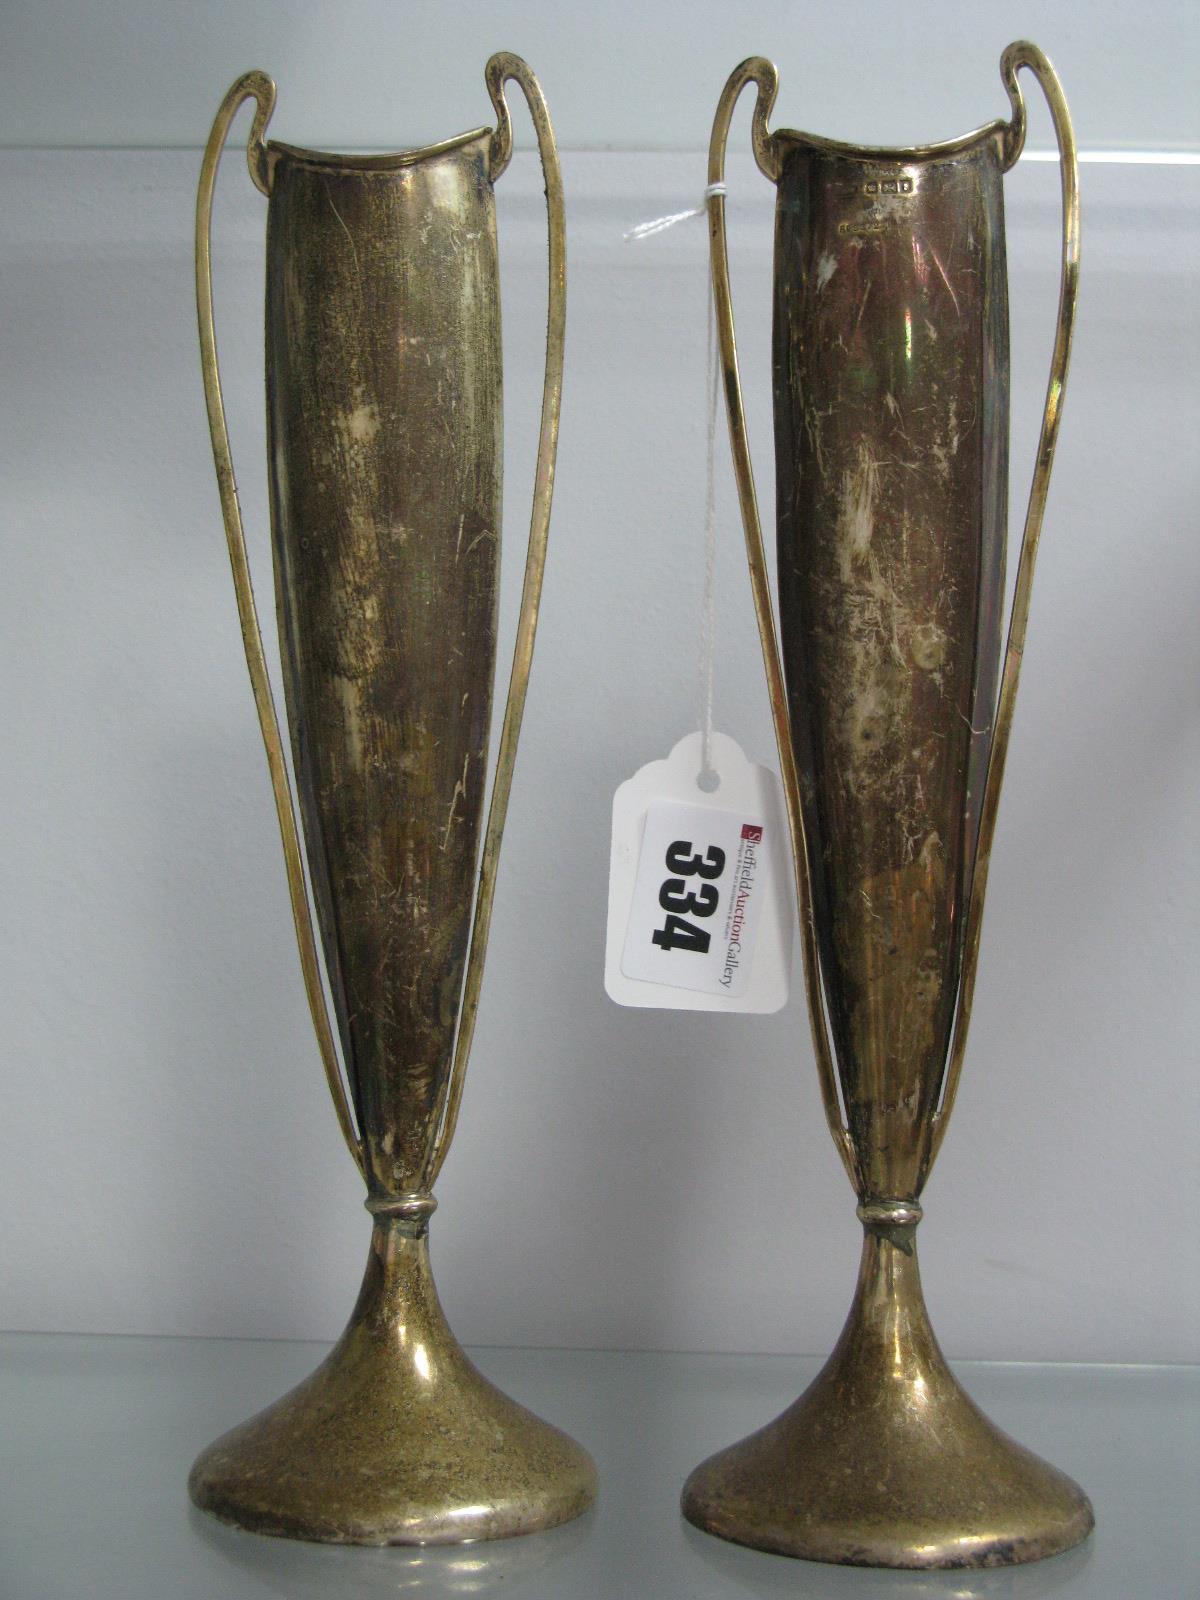 Lot 334 - A Pair of Hallmarked Silver Vases,each of tall slender tapering form, with high loop handles, on